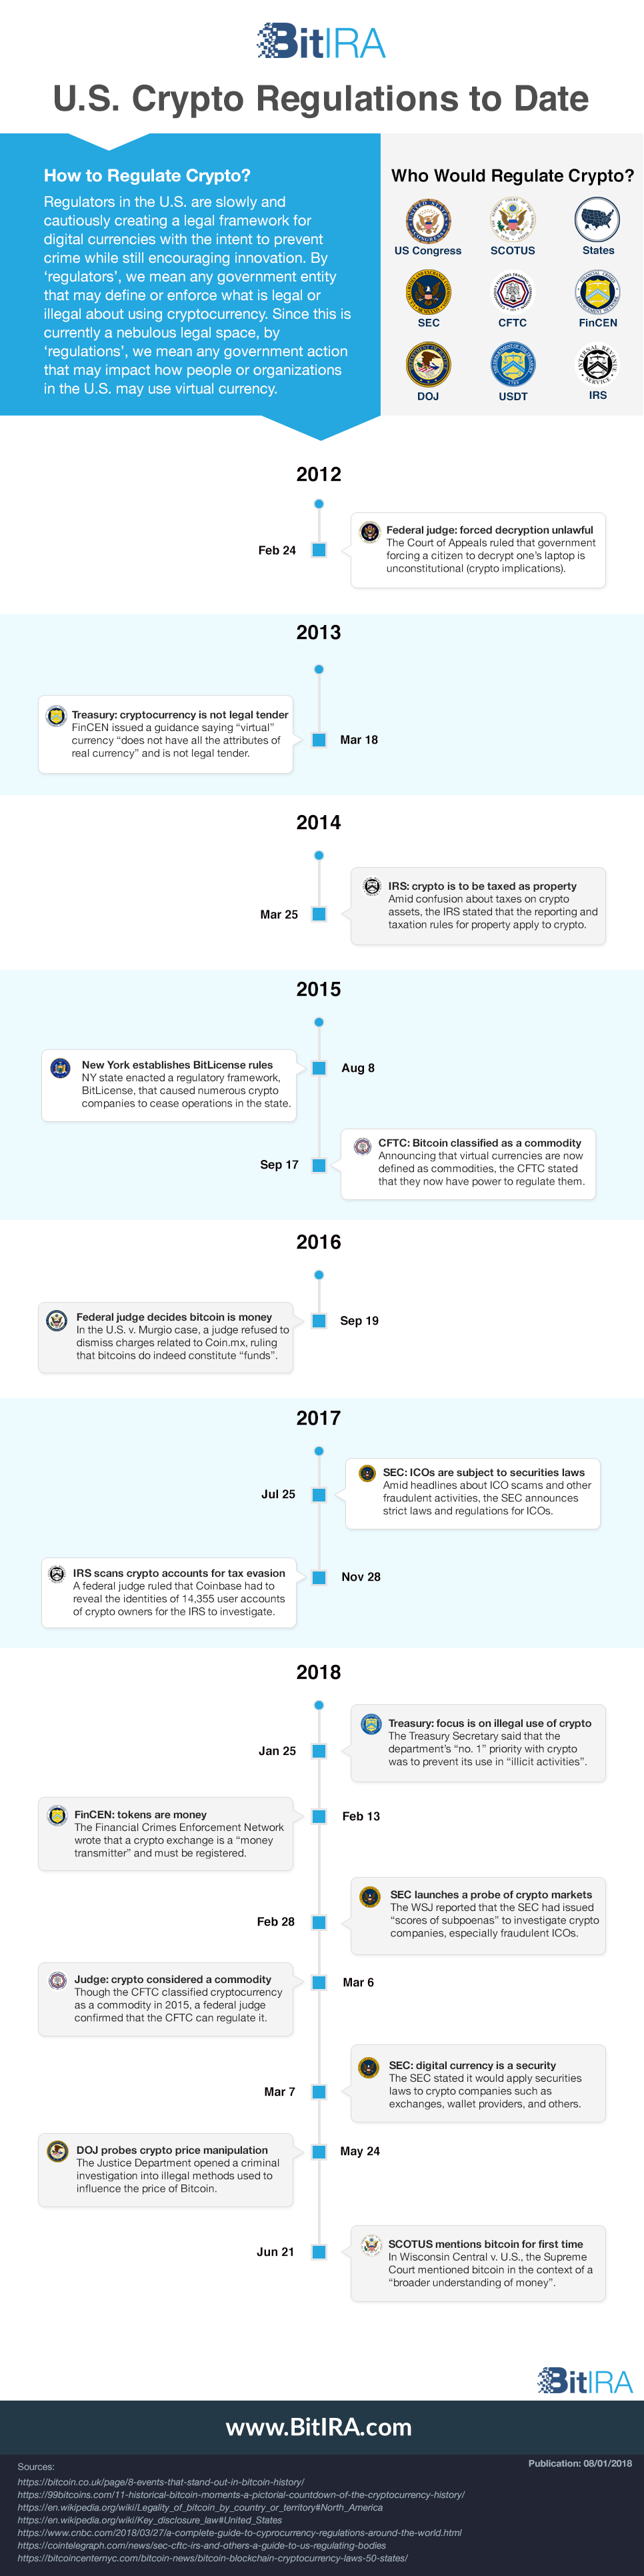 US cryptocurrency regulations timeline